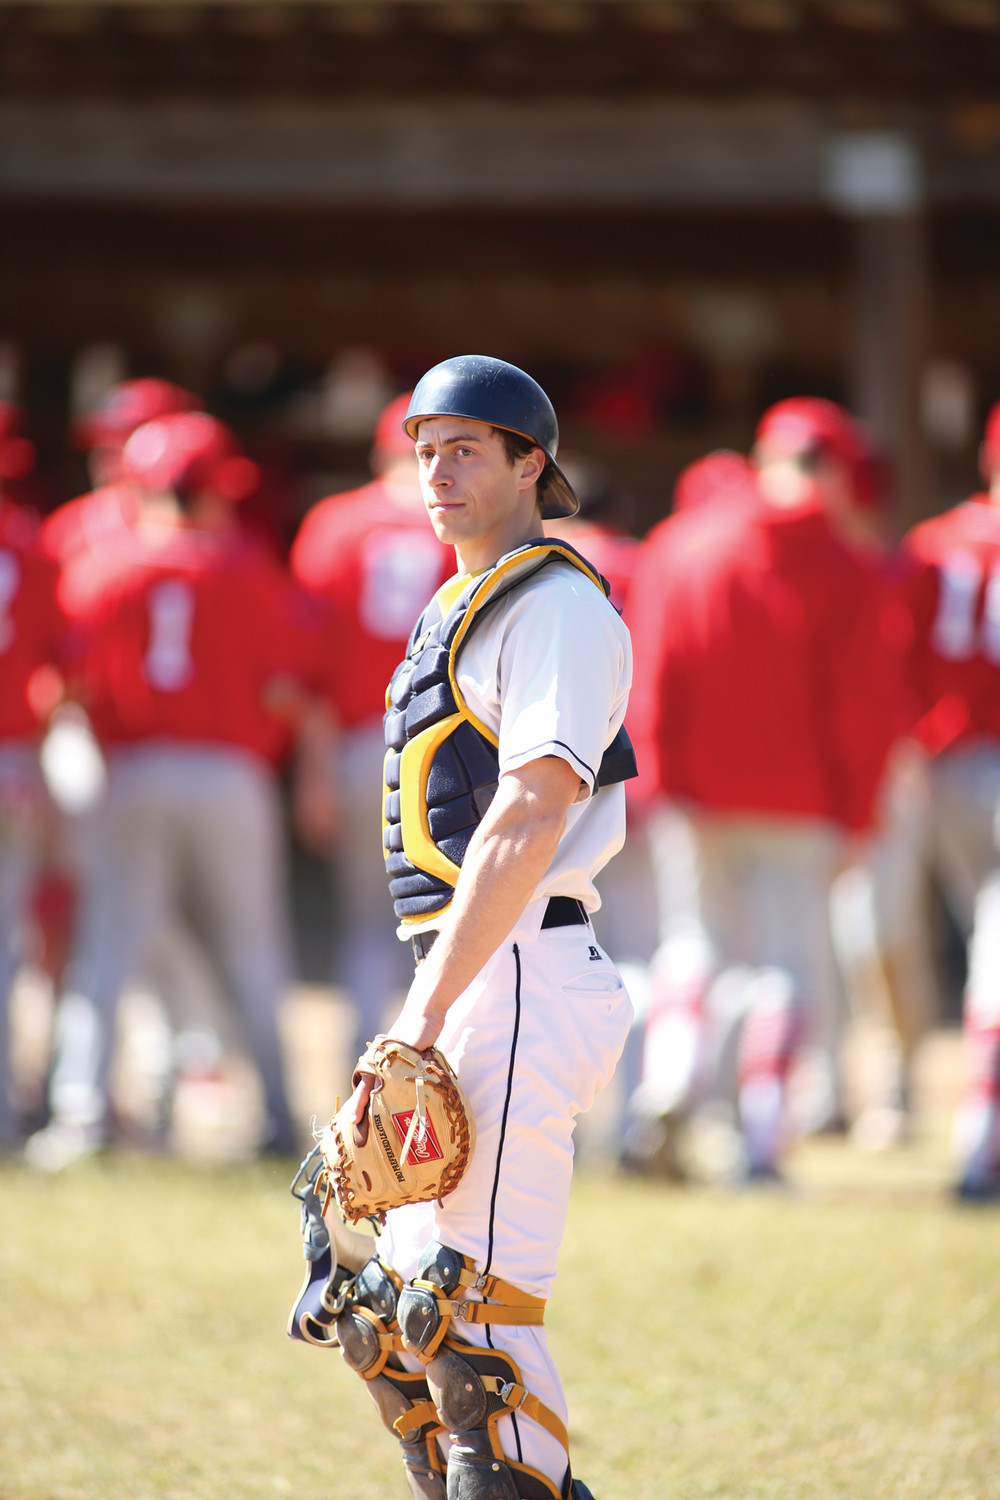 COLLEGE BALL: Warwick native and Toll Gate grad Stefano Muscatelli playing baseball for St. Mary's College of Maryland.